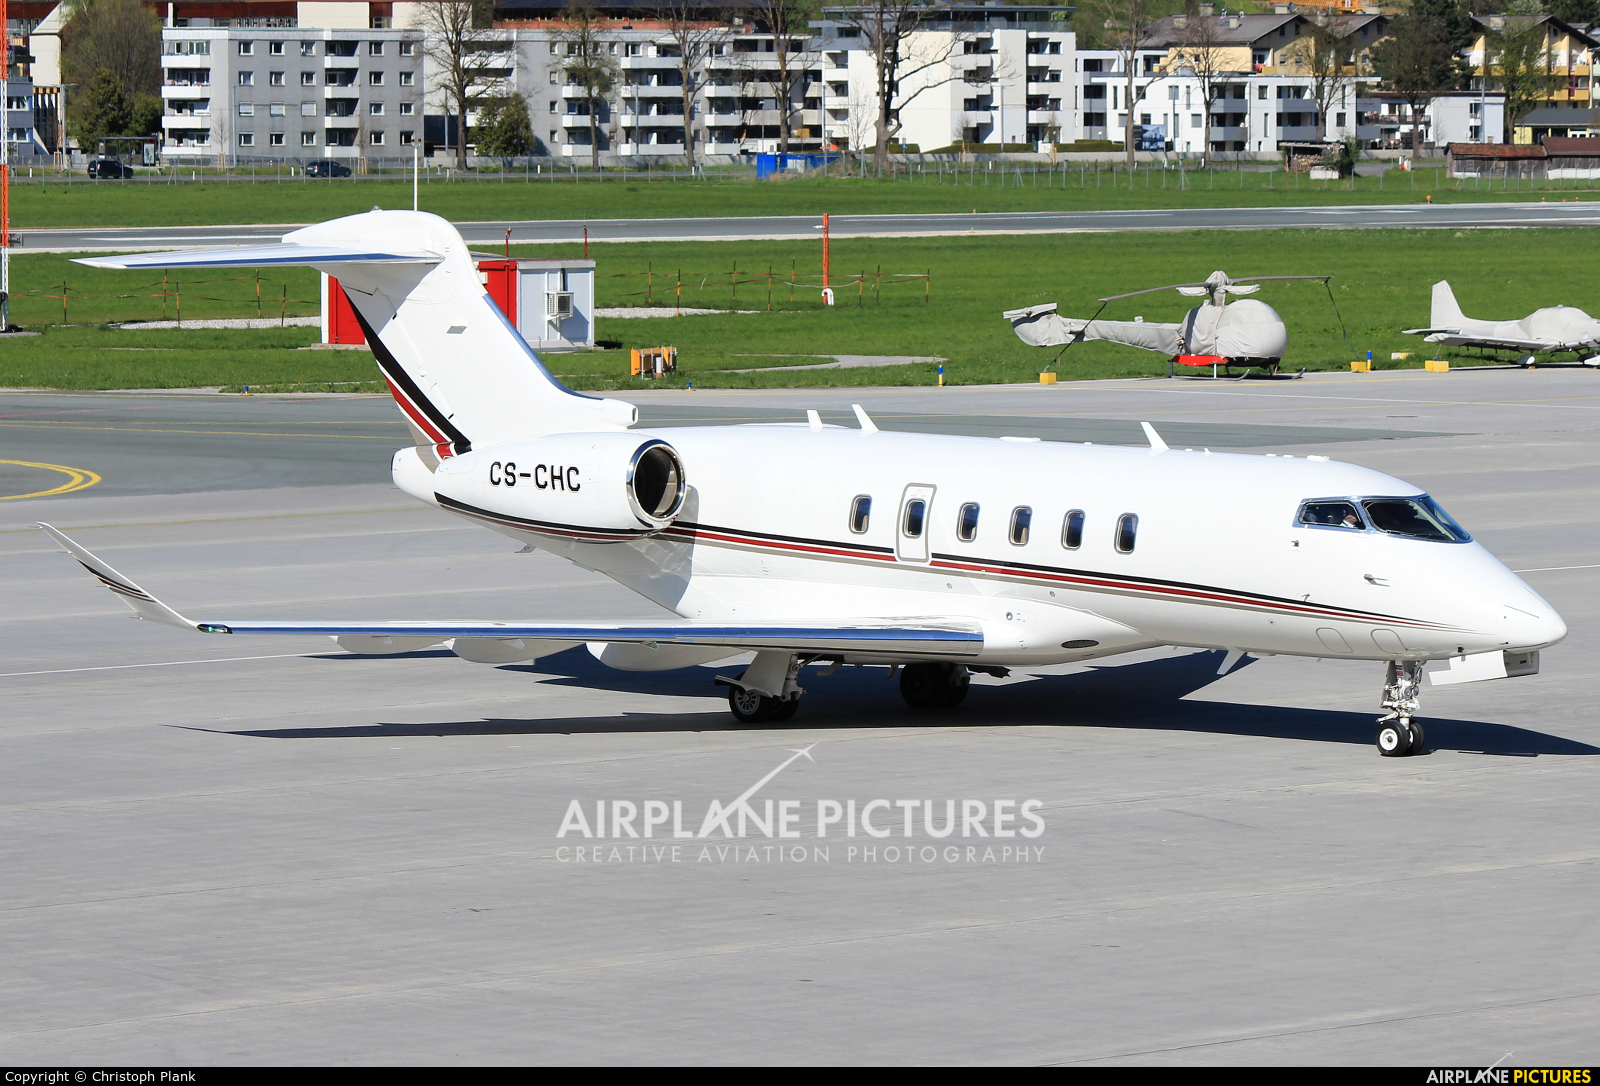 NetJets Europe (Portugal) CS-CHC aircraft at Innsbruck